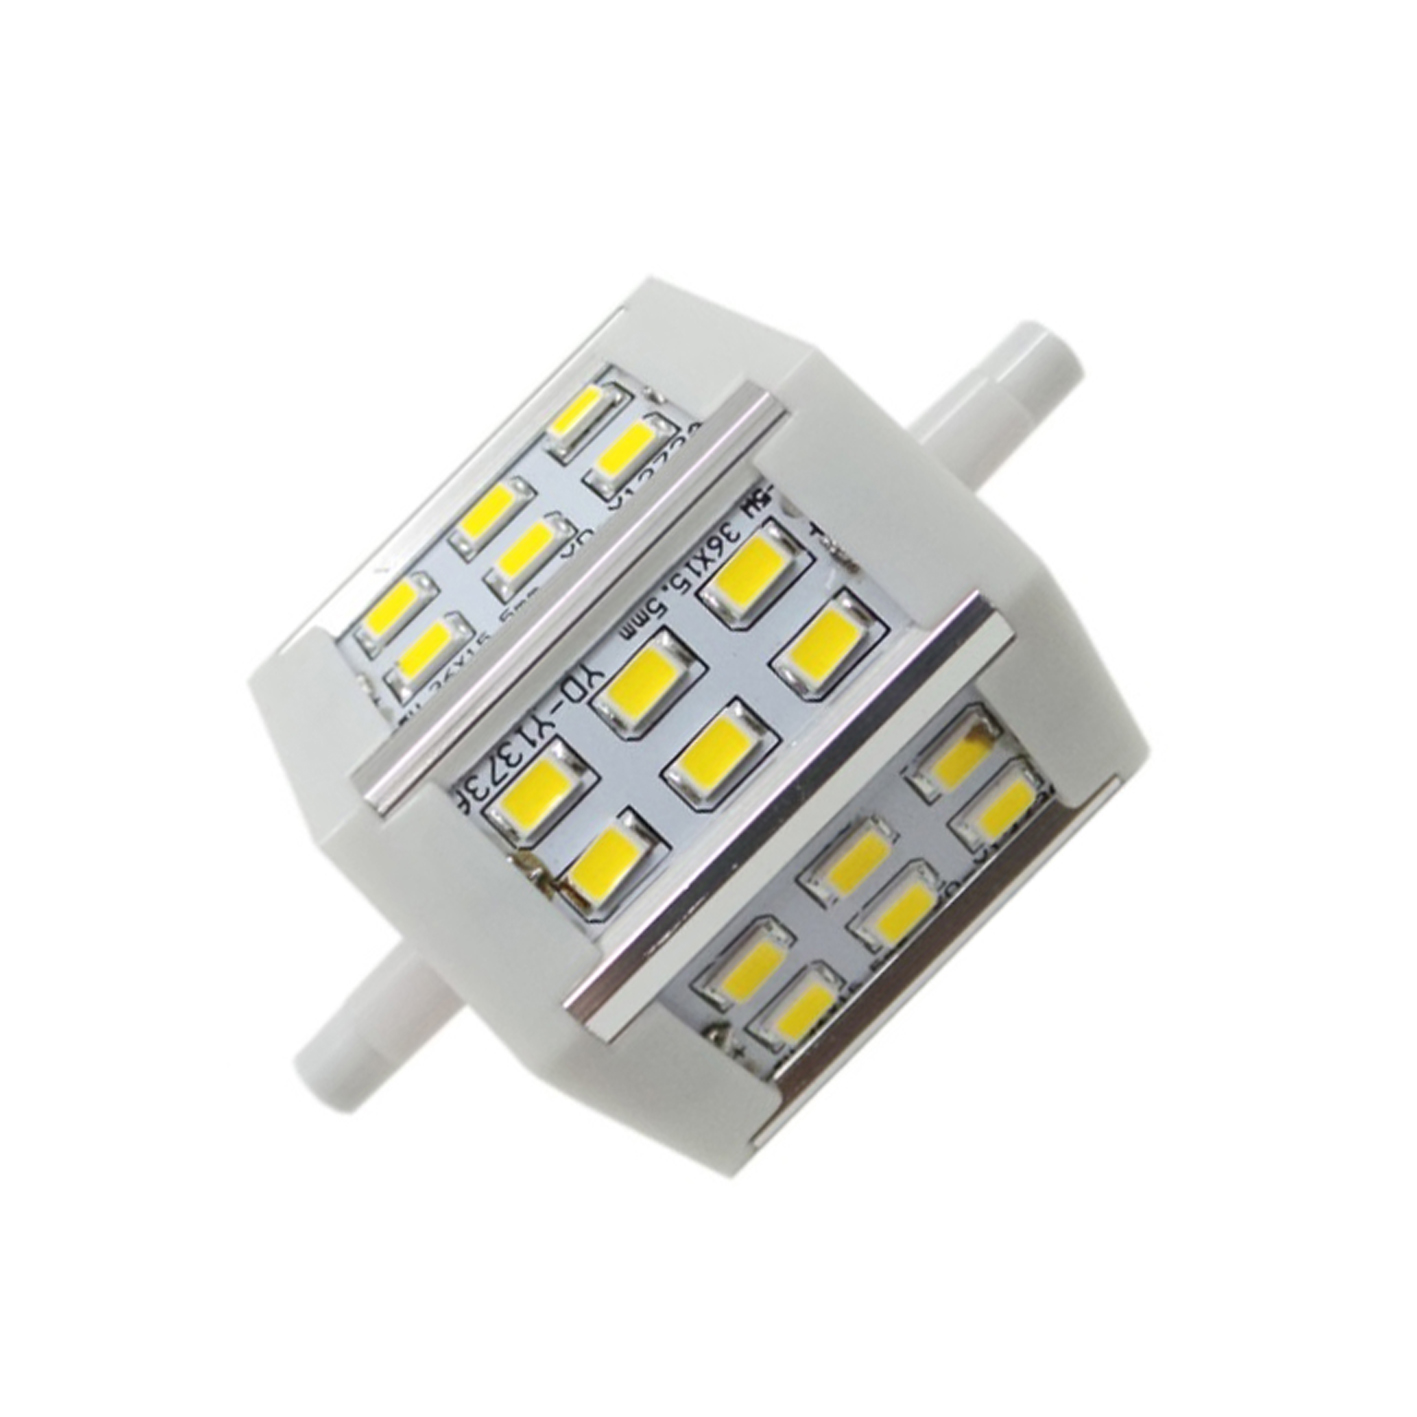 Lampara R7s Bajo Consumo R7s Led Bombilla De 6w Led 78mm 18 Silamp 230v 6w Luz Natural